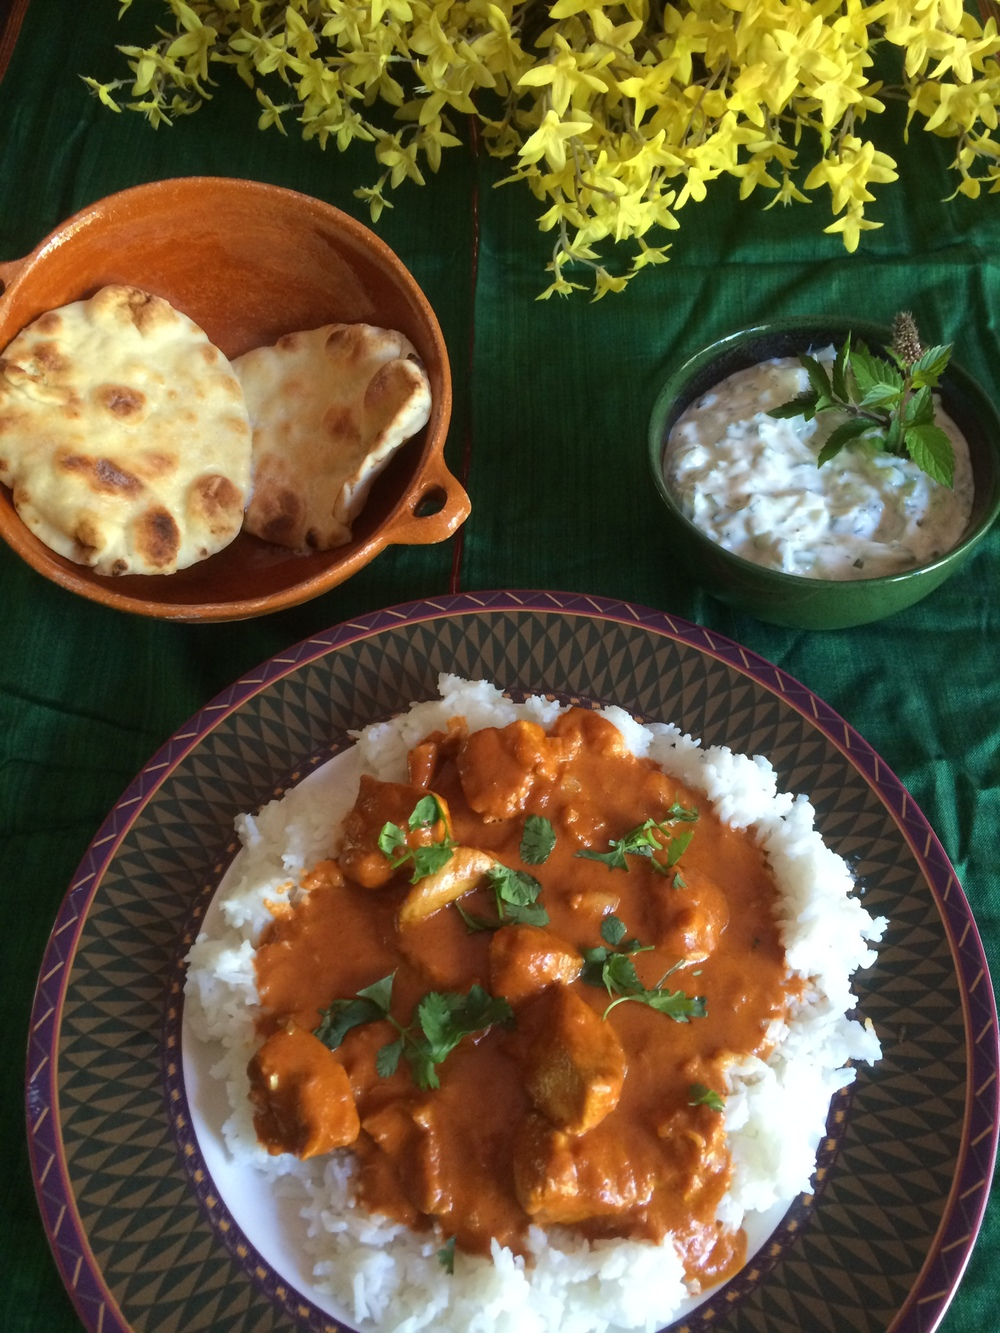 Perfectly spiced chicken tikka masala, served with basmati rice, naan, and cucumber-mint raita.